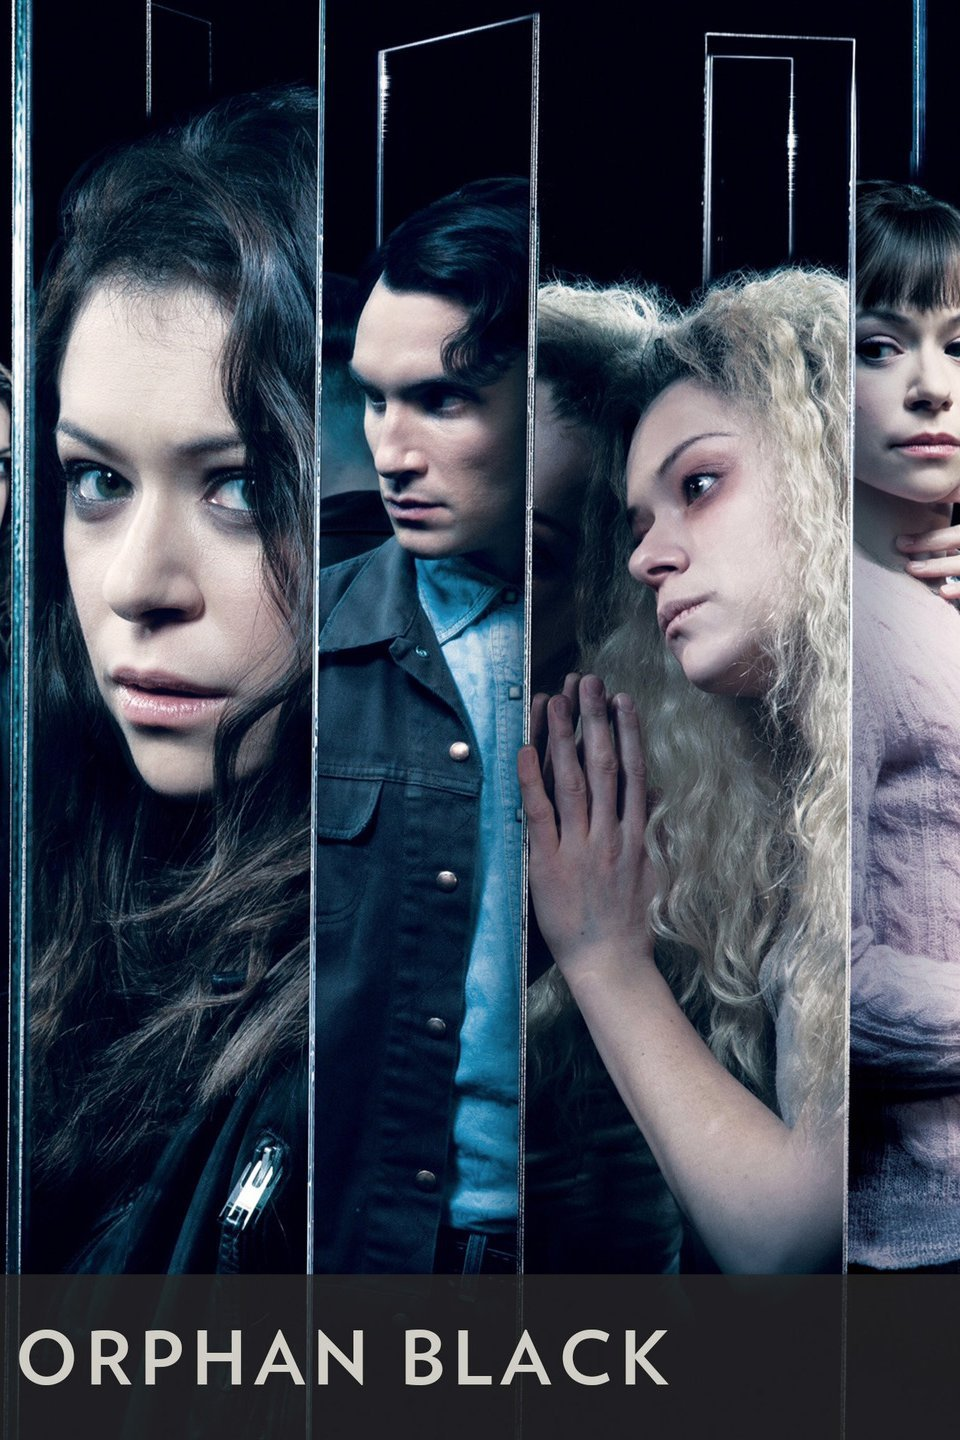 Orphan Black Season 5 Episode 9 Download HDTV 480p & 720p